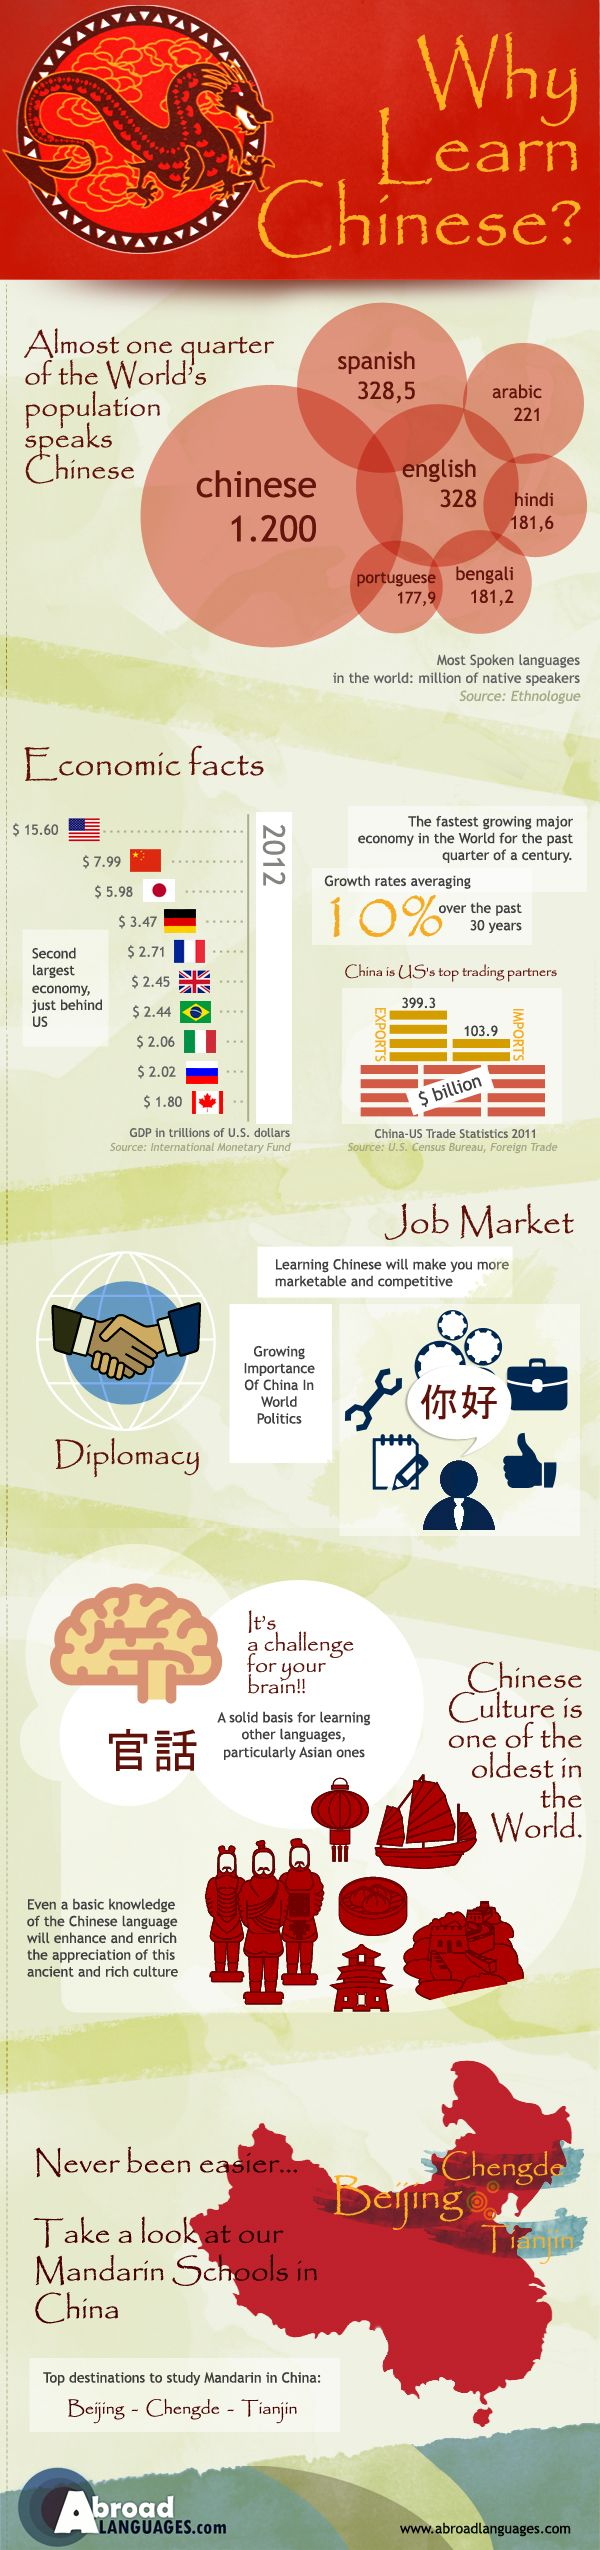 Infographic: Why Learn Chinese